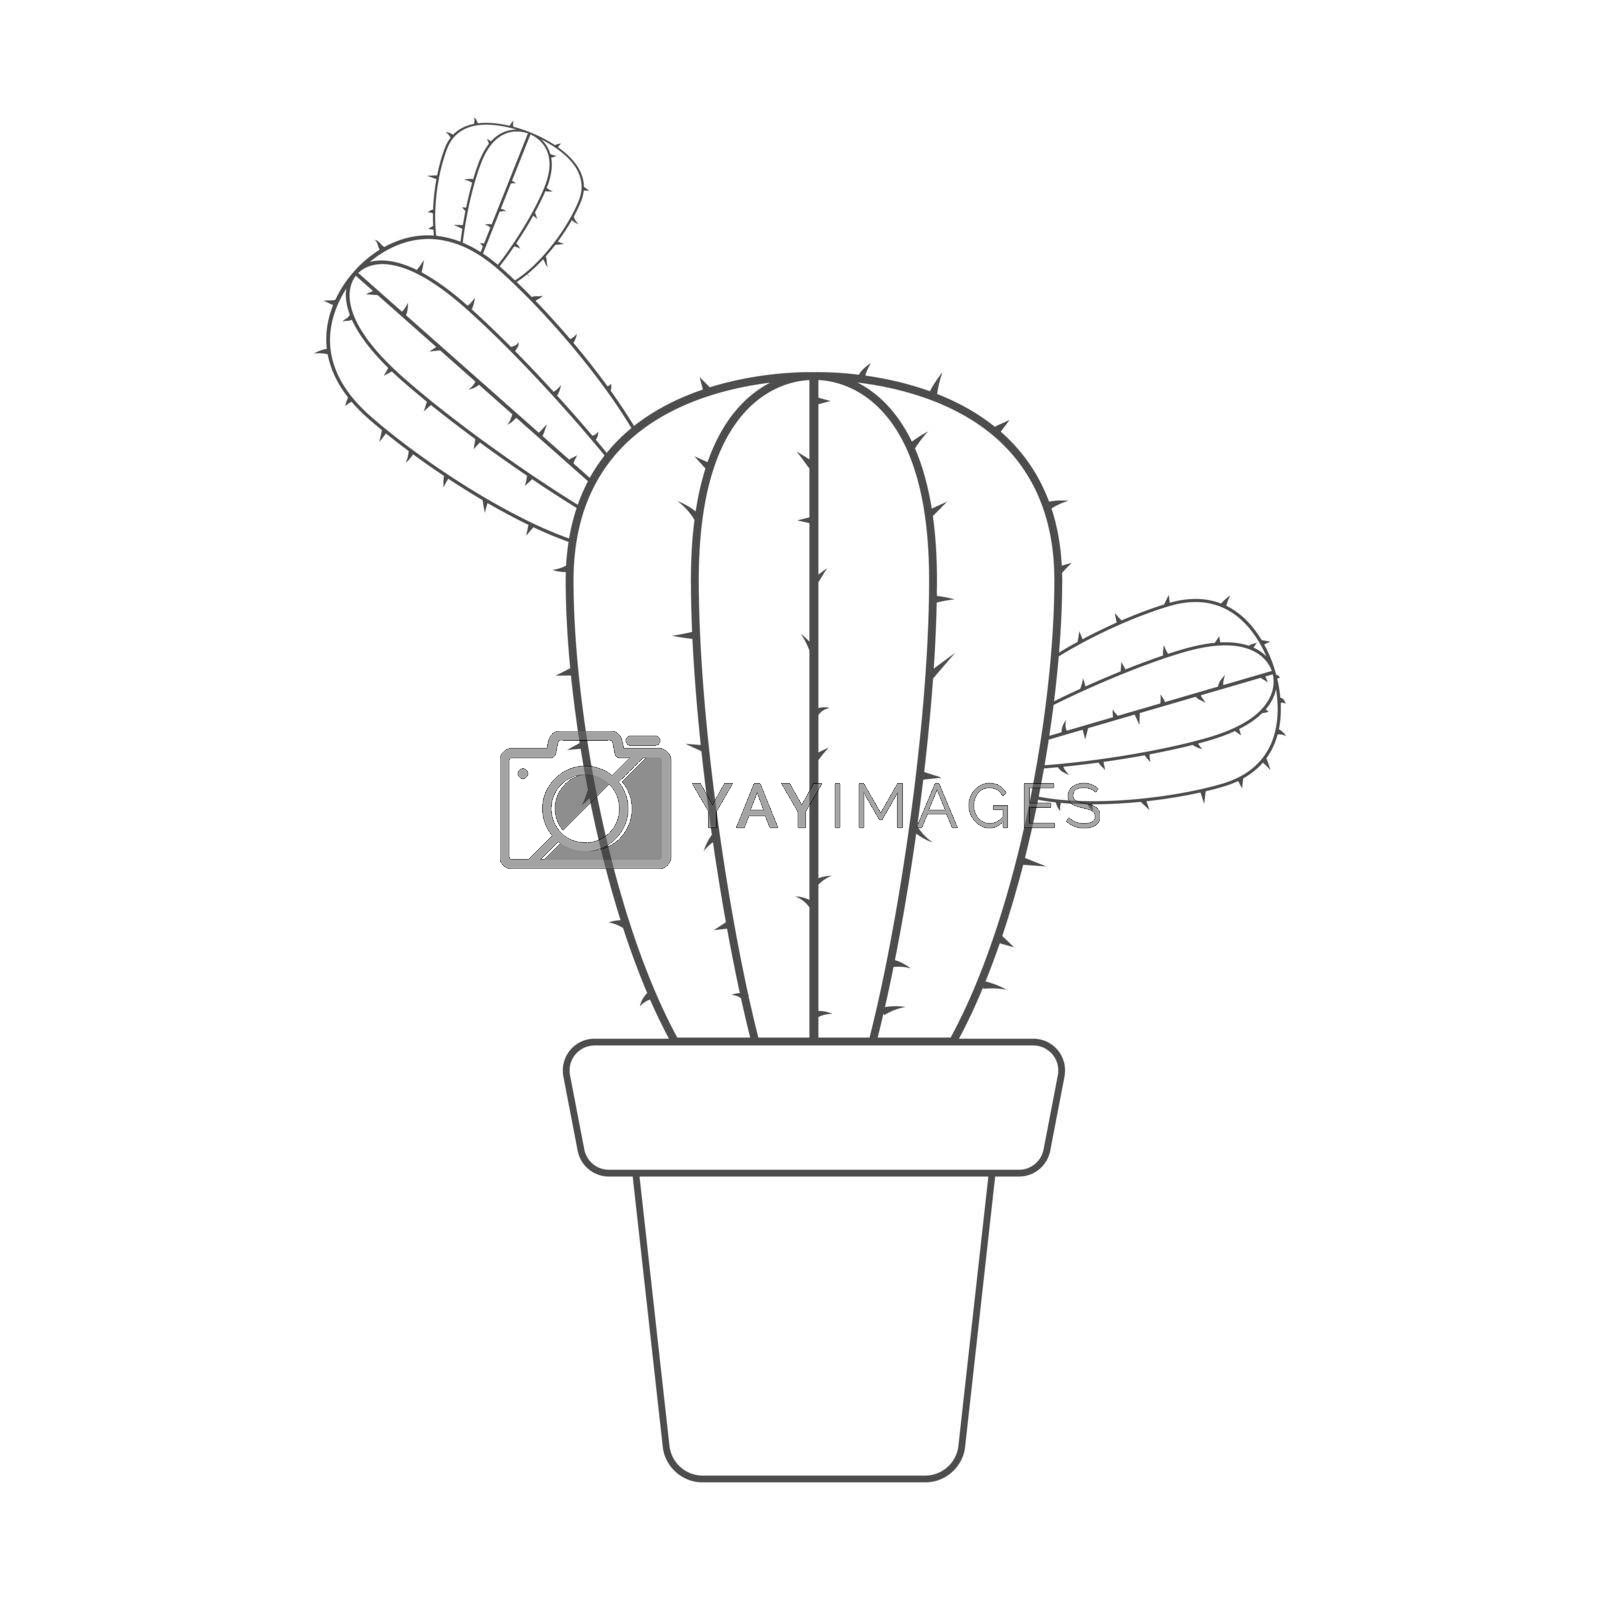 Royalty free image of Contour silhouette of a cactus. Vector illustration for coloring books, scrapbooking, and creative design by Grommik